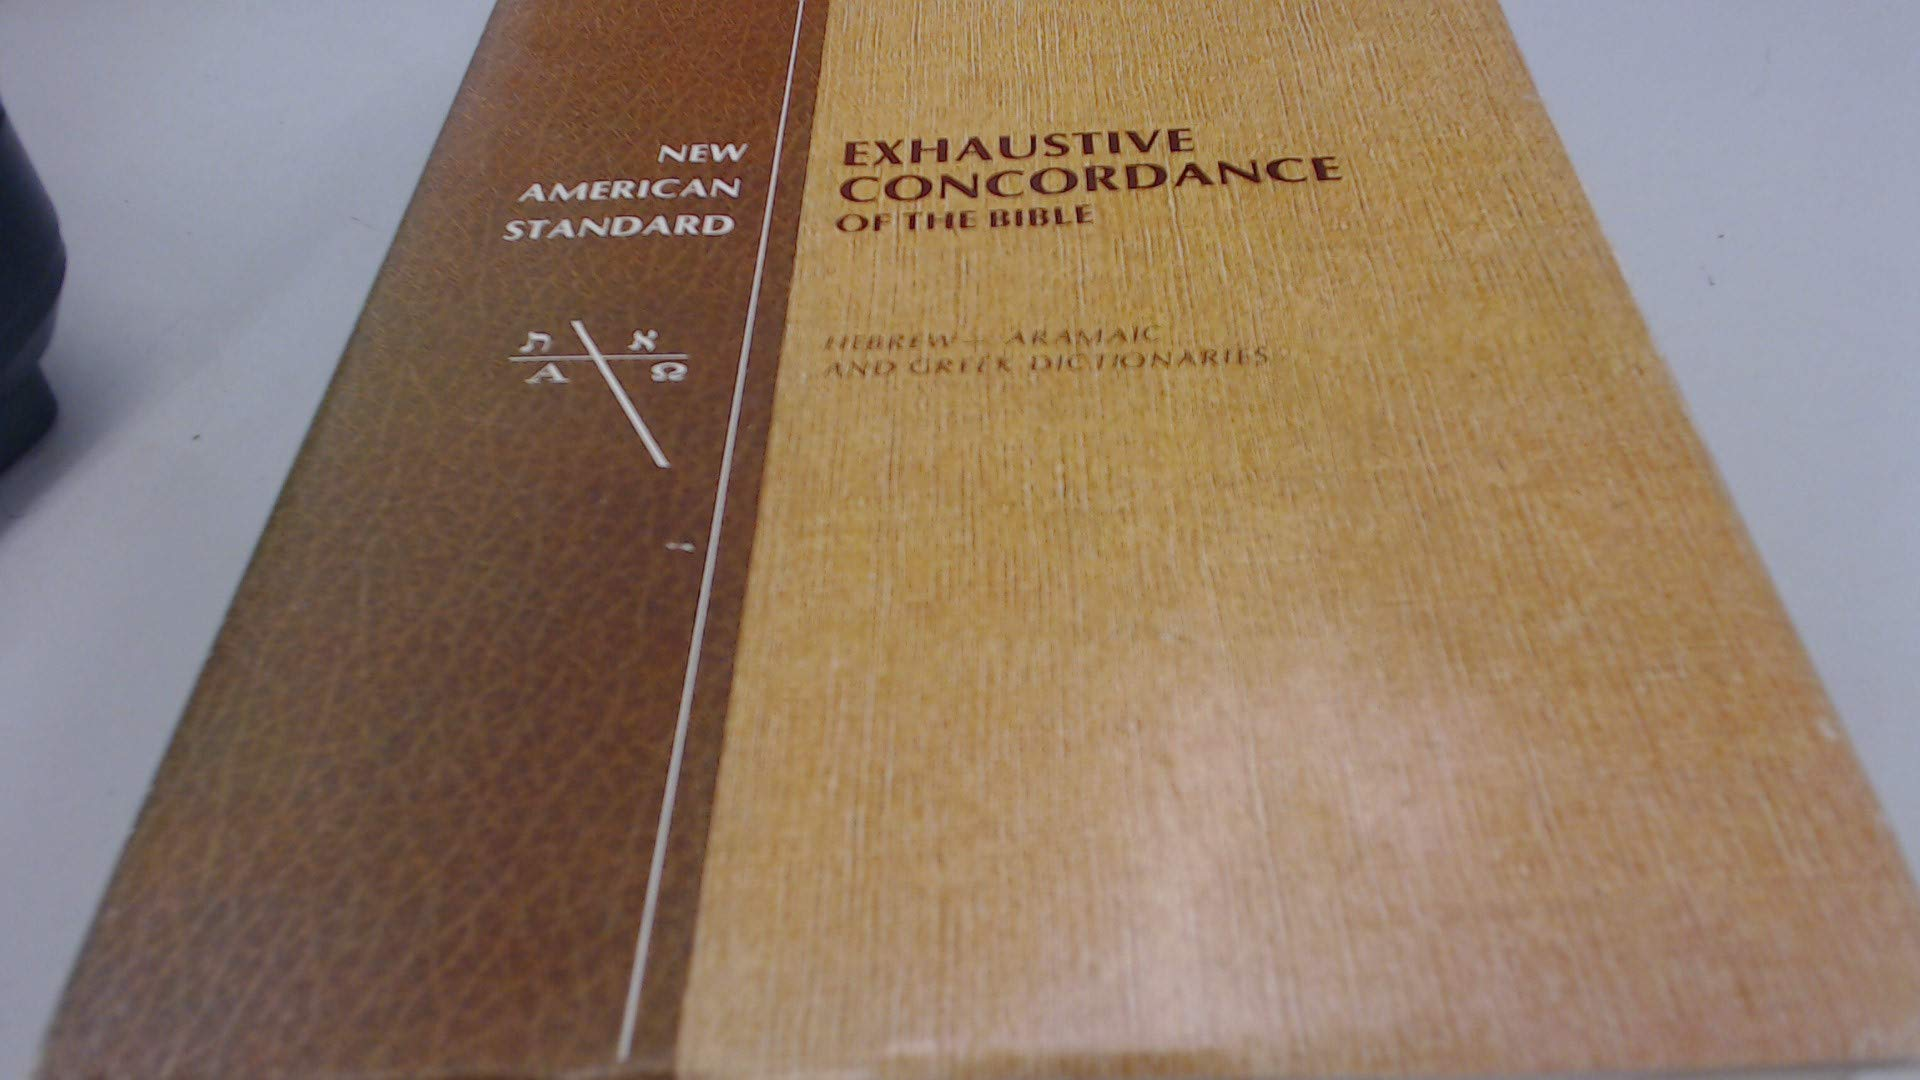 New American Standard Exhaustive Concordance of the Bible